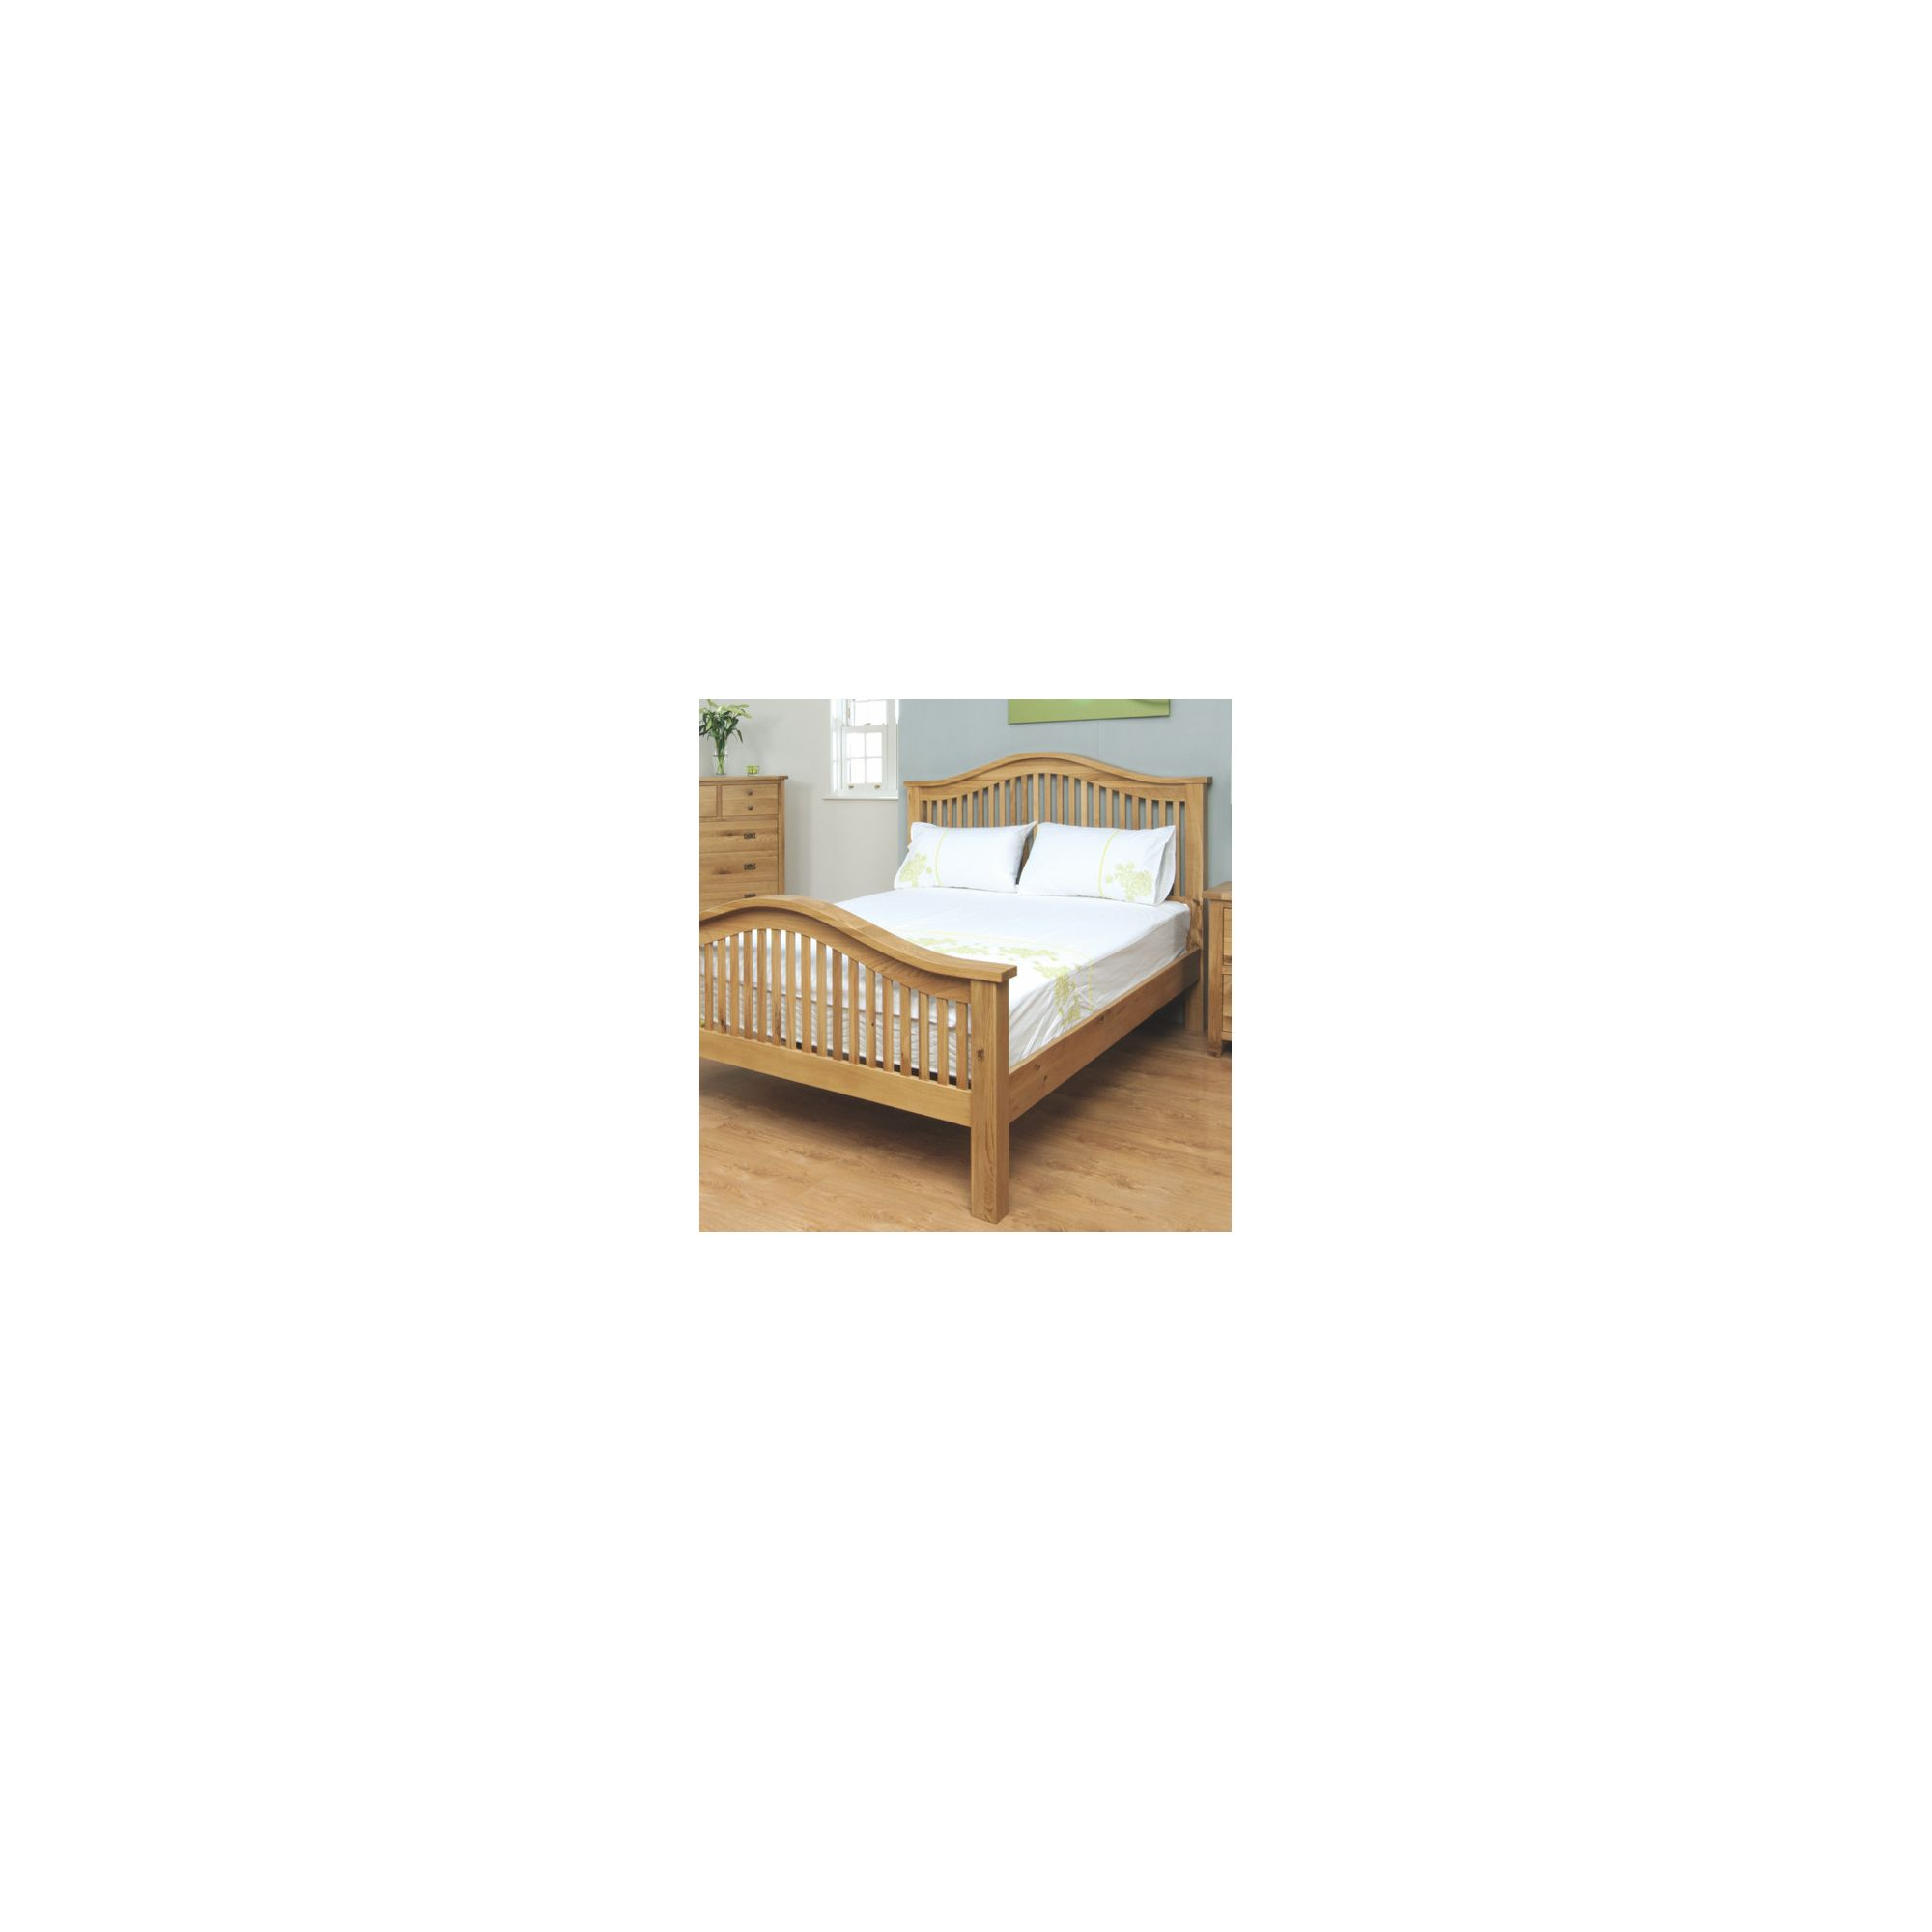 Elements Aylesbury Bed - Double at Tesco Direct